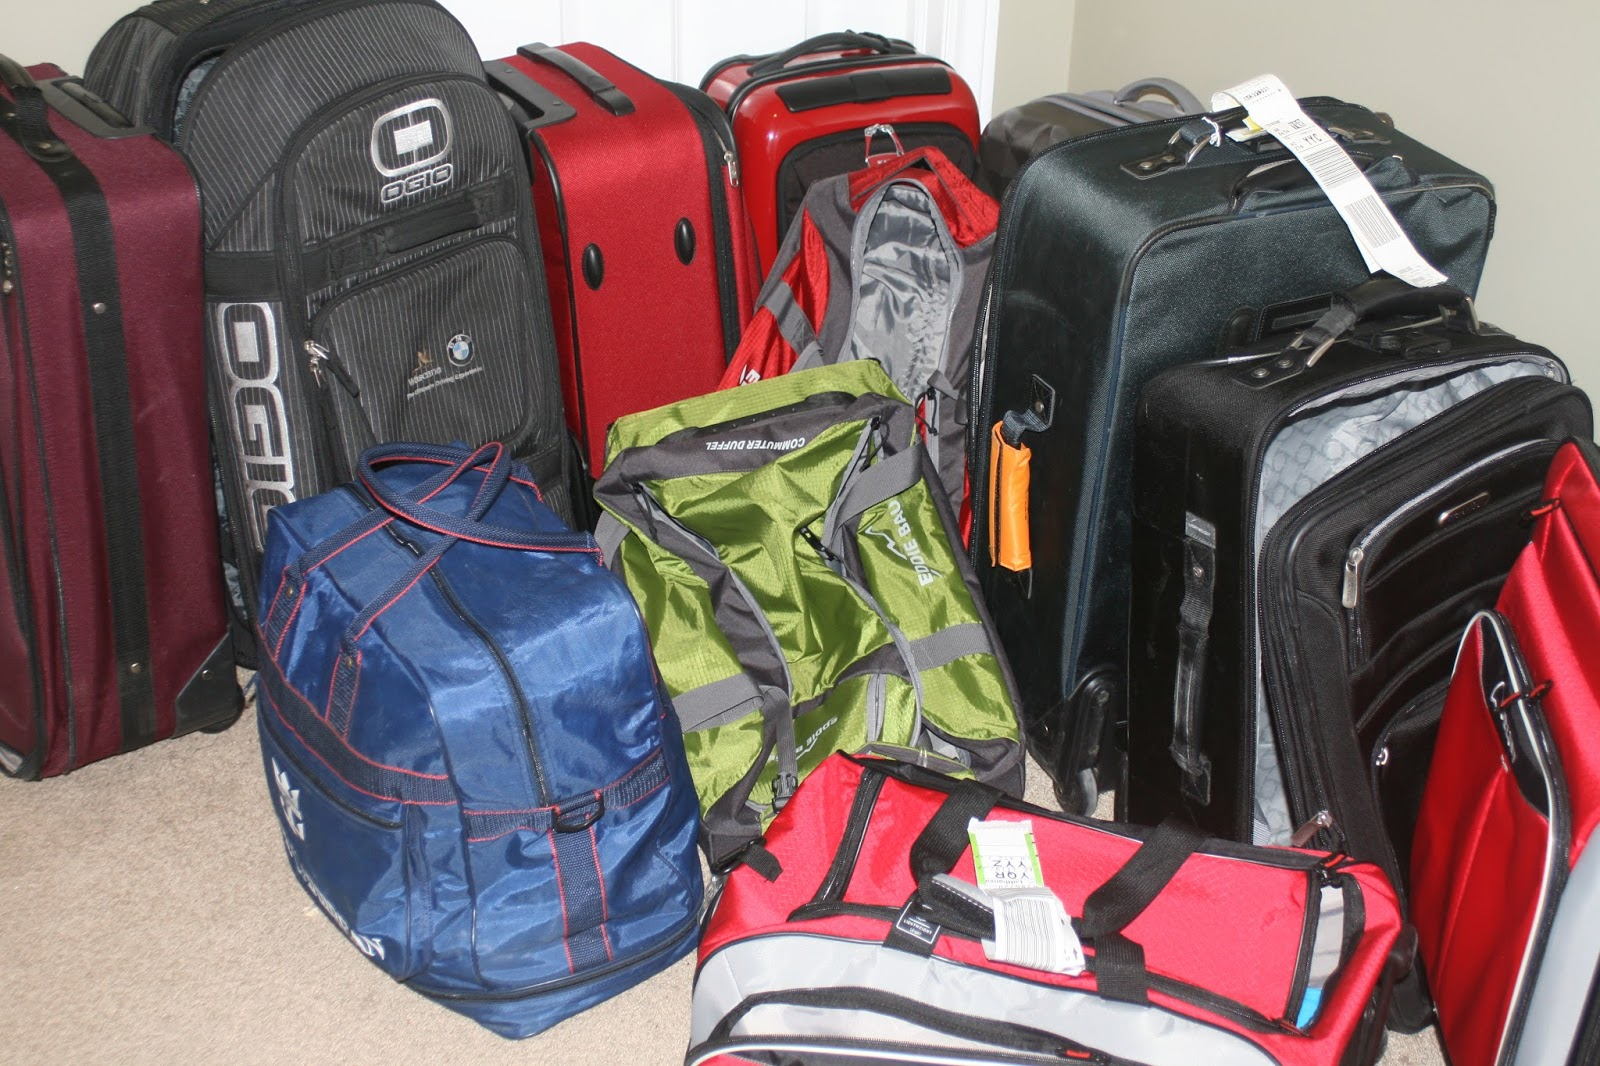 My Husband Travels Frequently And Likes To Have Some Suitcases Easily  Accessible In The Master Closet And A Few Sizes. We Had Not Only A Few  Suitcases But ...